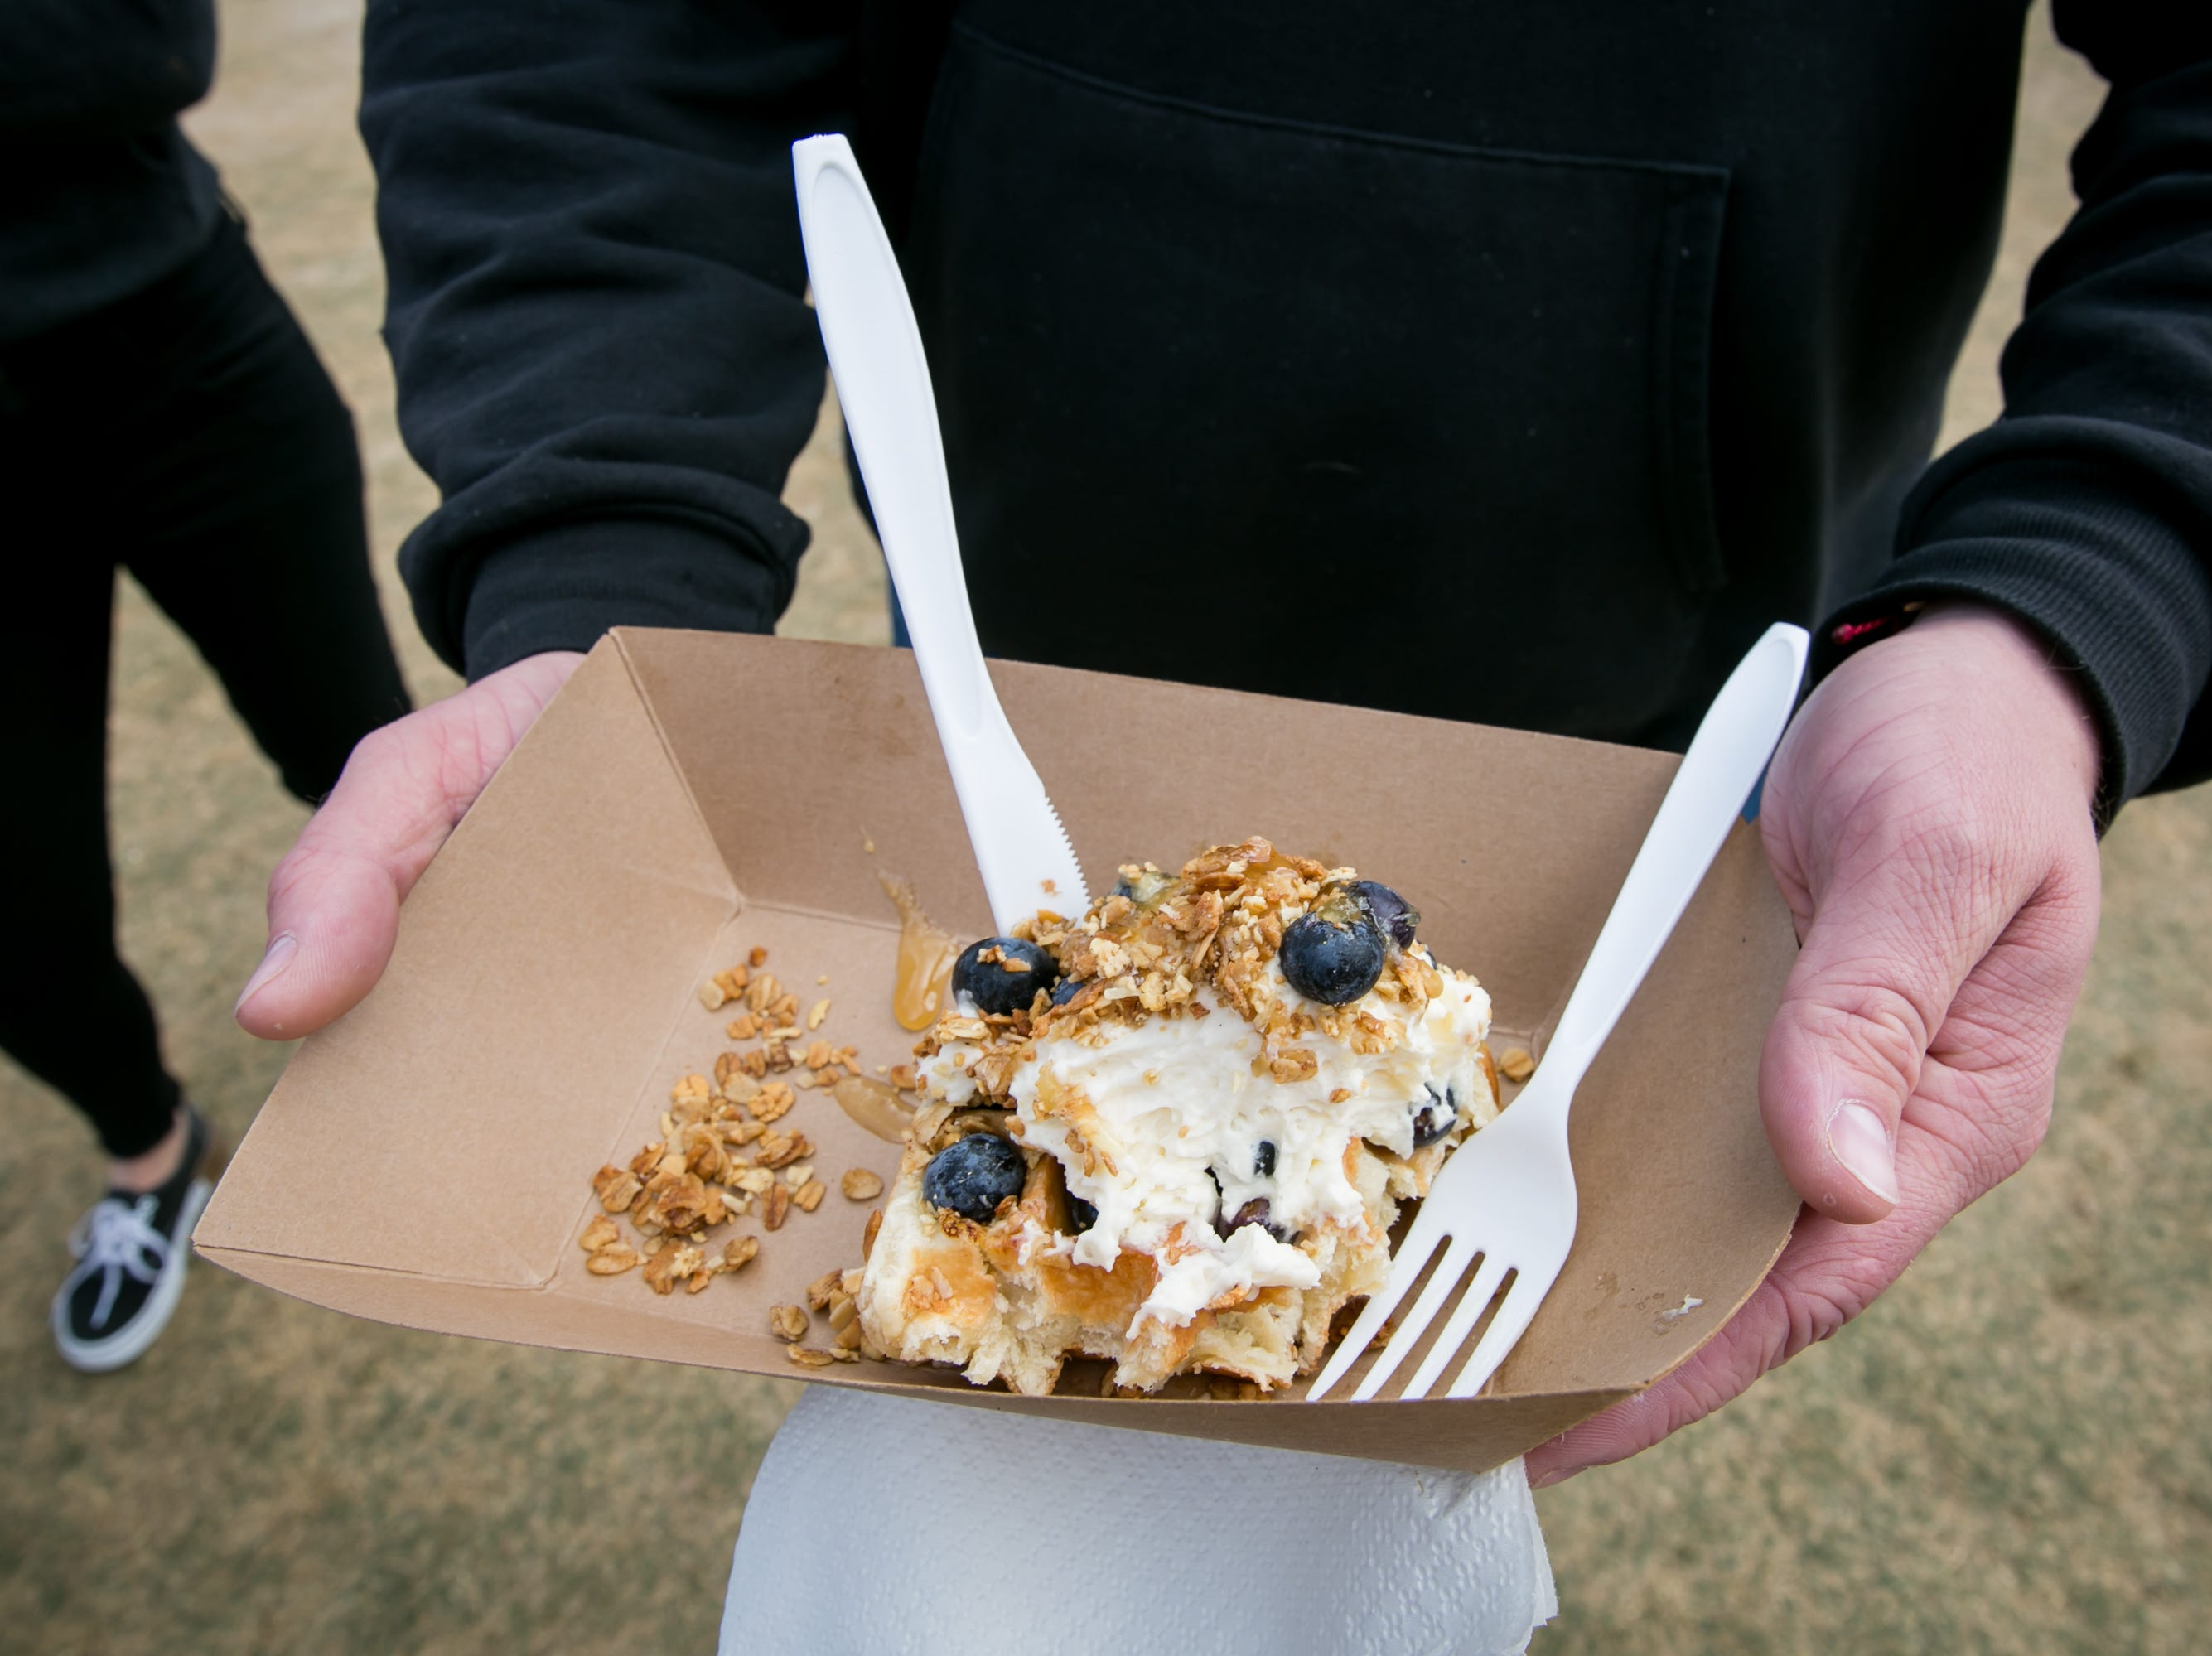 This blueberry granola honey waffle was fantastic during the Street Eats Food Truck Festival at Salt River Fields near Scottsdale on Feb. 17, 2019.